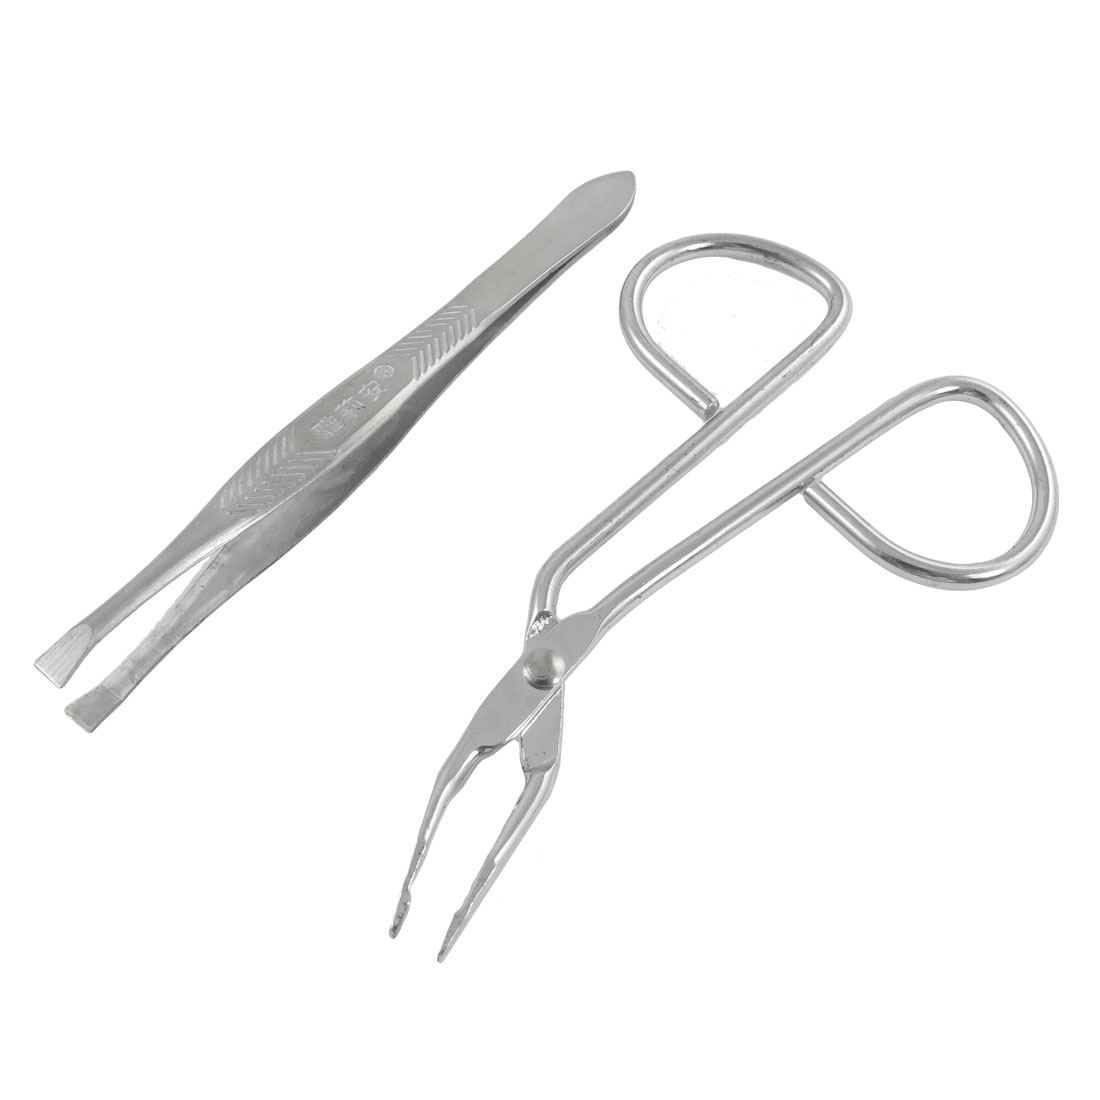 2 in 1 Set Eyebrow Scissors Flat Tip Tweezers Silver Tone